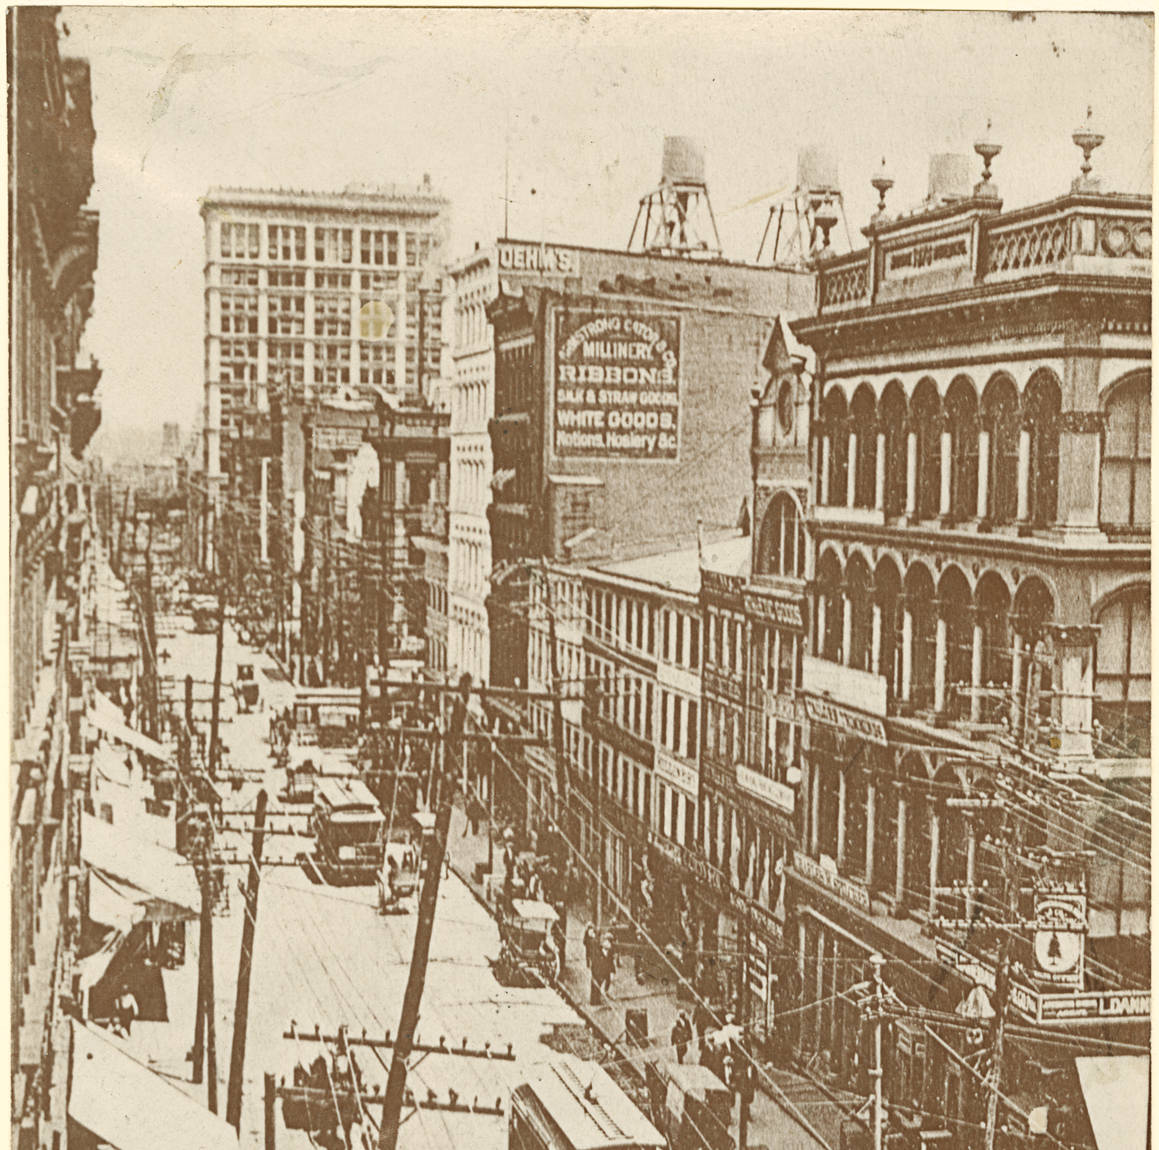 Baltimore Street, West of Hanover Before 1904 Fire